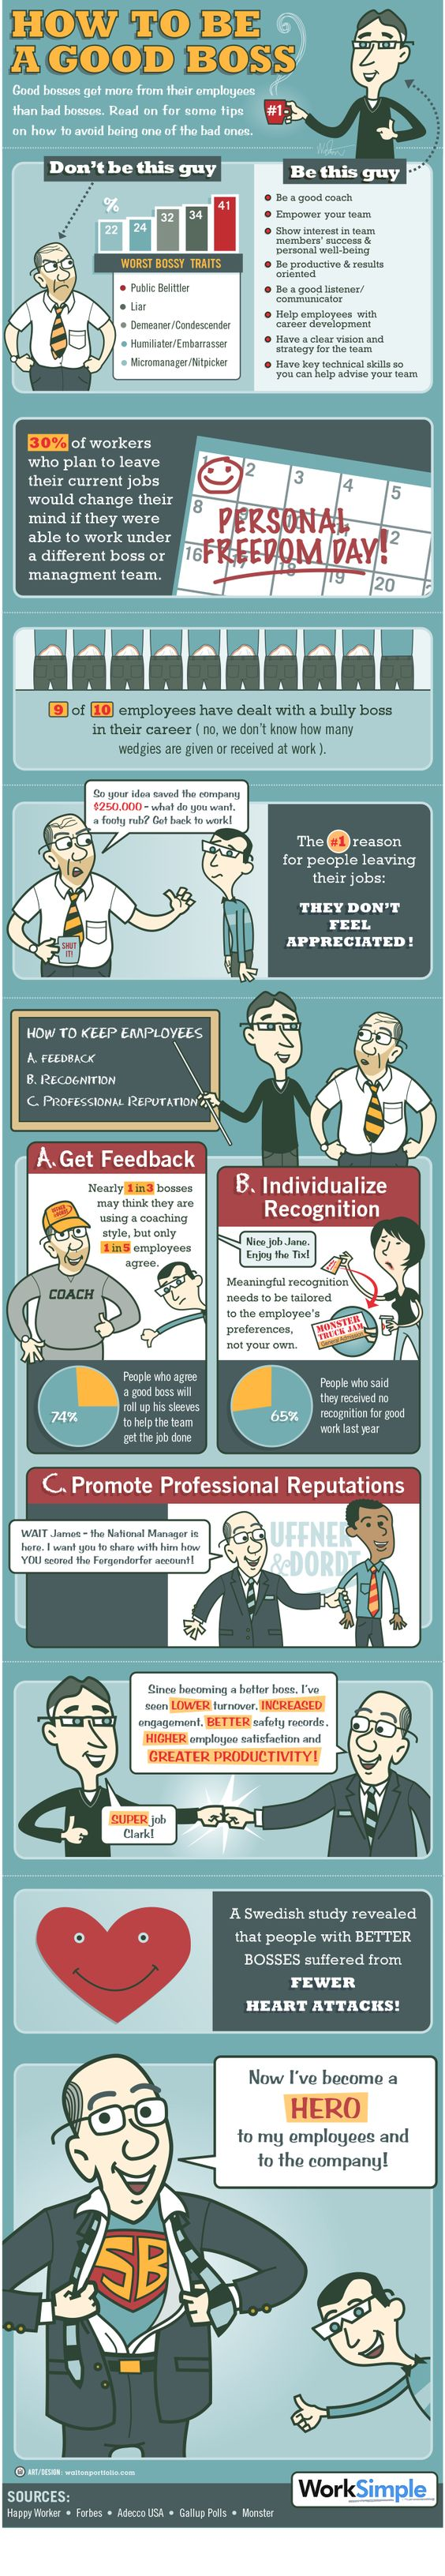 infographic how to be a good boss management tips bad boss and having a good supervisor plays a huge part in how well you enjoy your work place i have personally been lucky enough to have had only the best supervisors